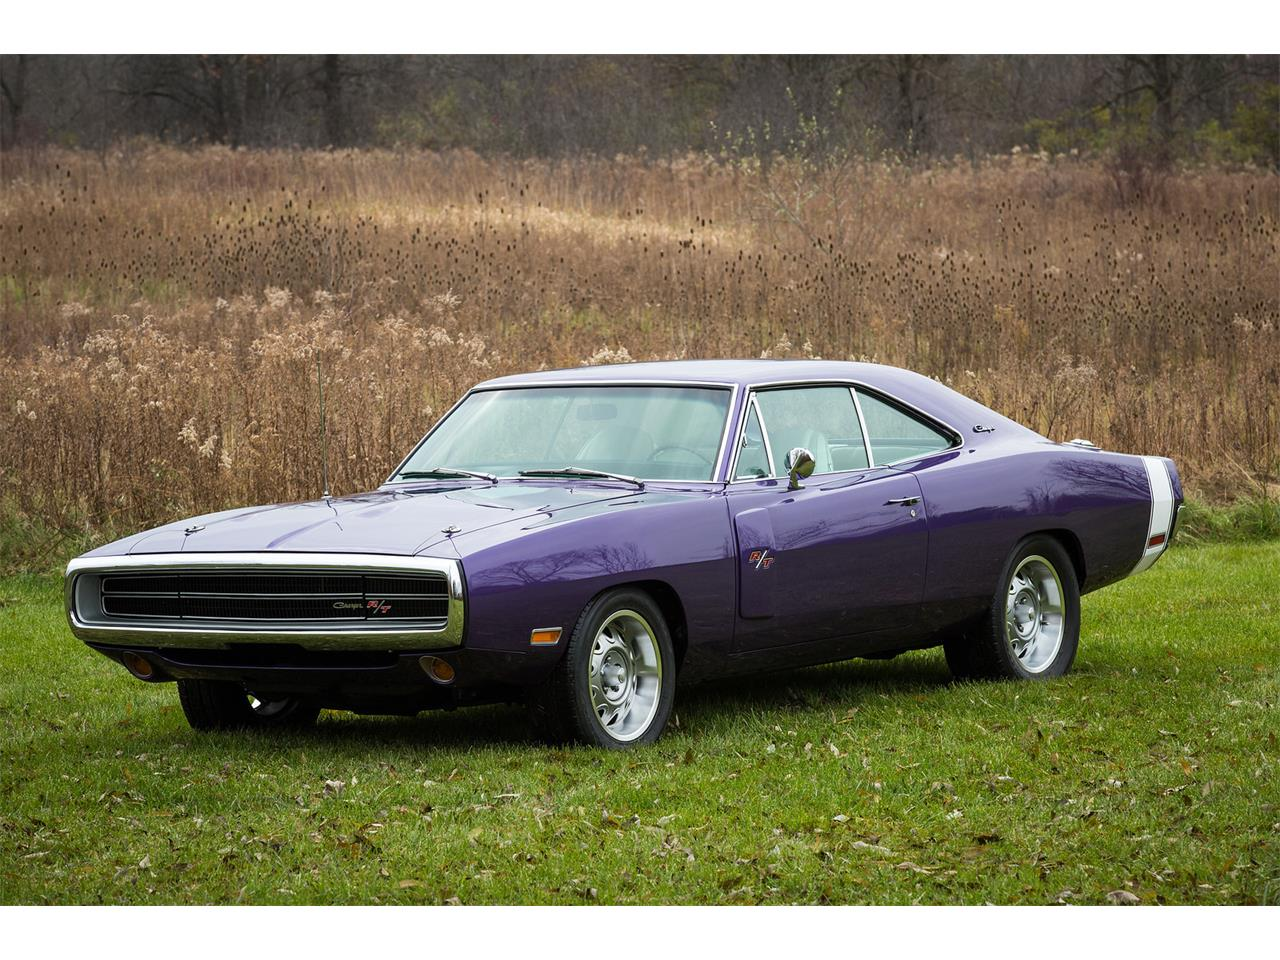 1970 dodge charger r t for sale cc 1159818. Black Bedroom Furniture Sets. Home Design Ideas